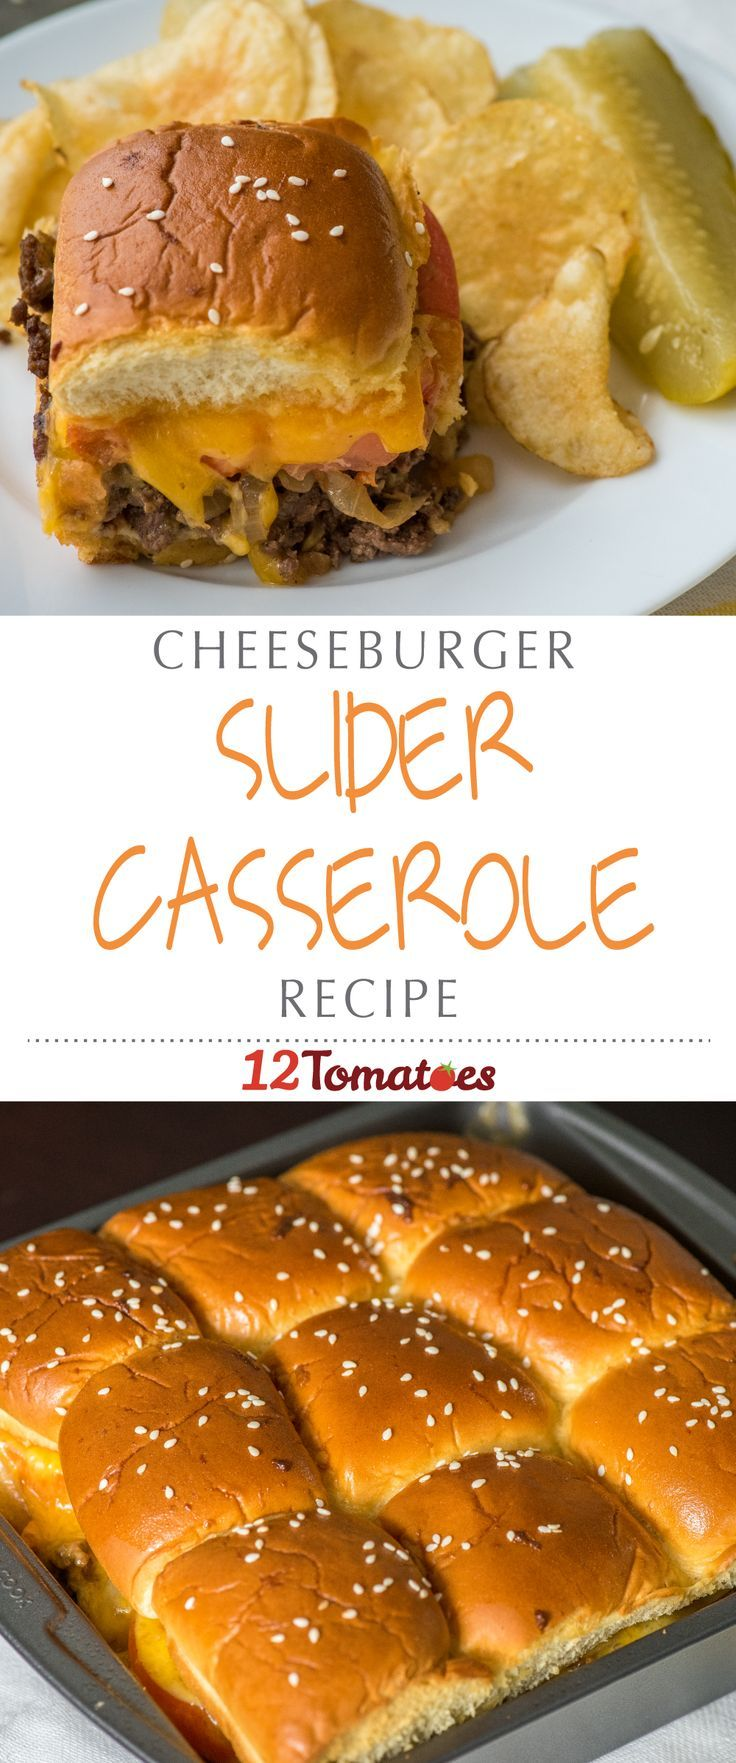 Cheeseburger Casserole | The best part is, we can bake these little gems up as a big batch casserole, making them one of the easiest and tastiest ways to enjoy a cheeseburger!